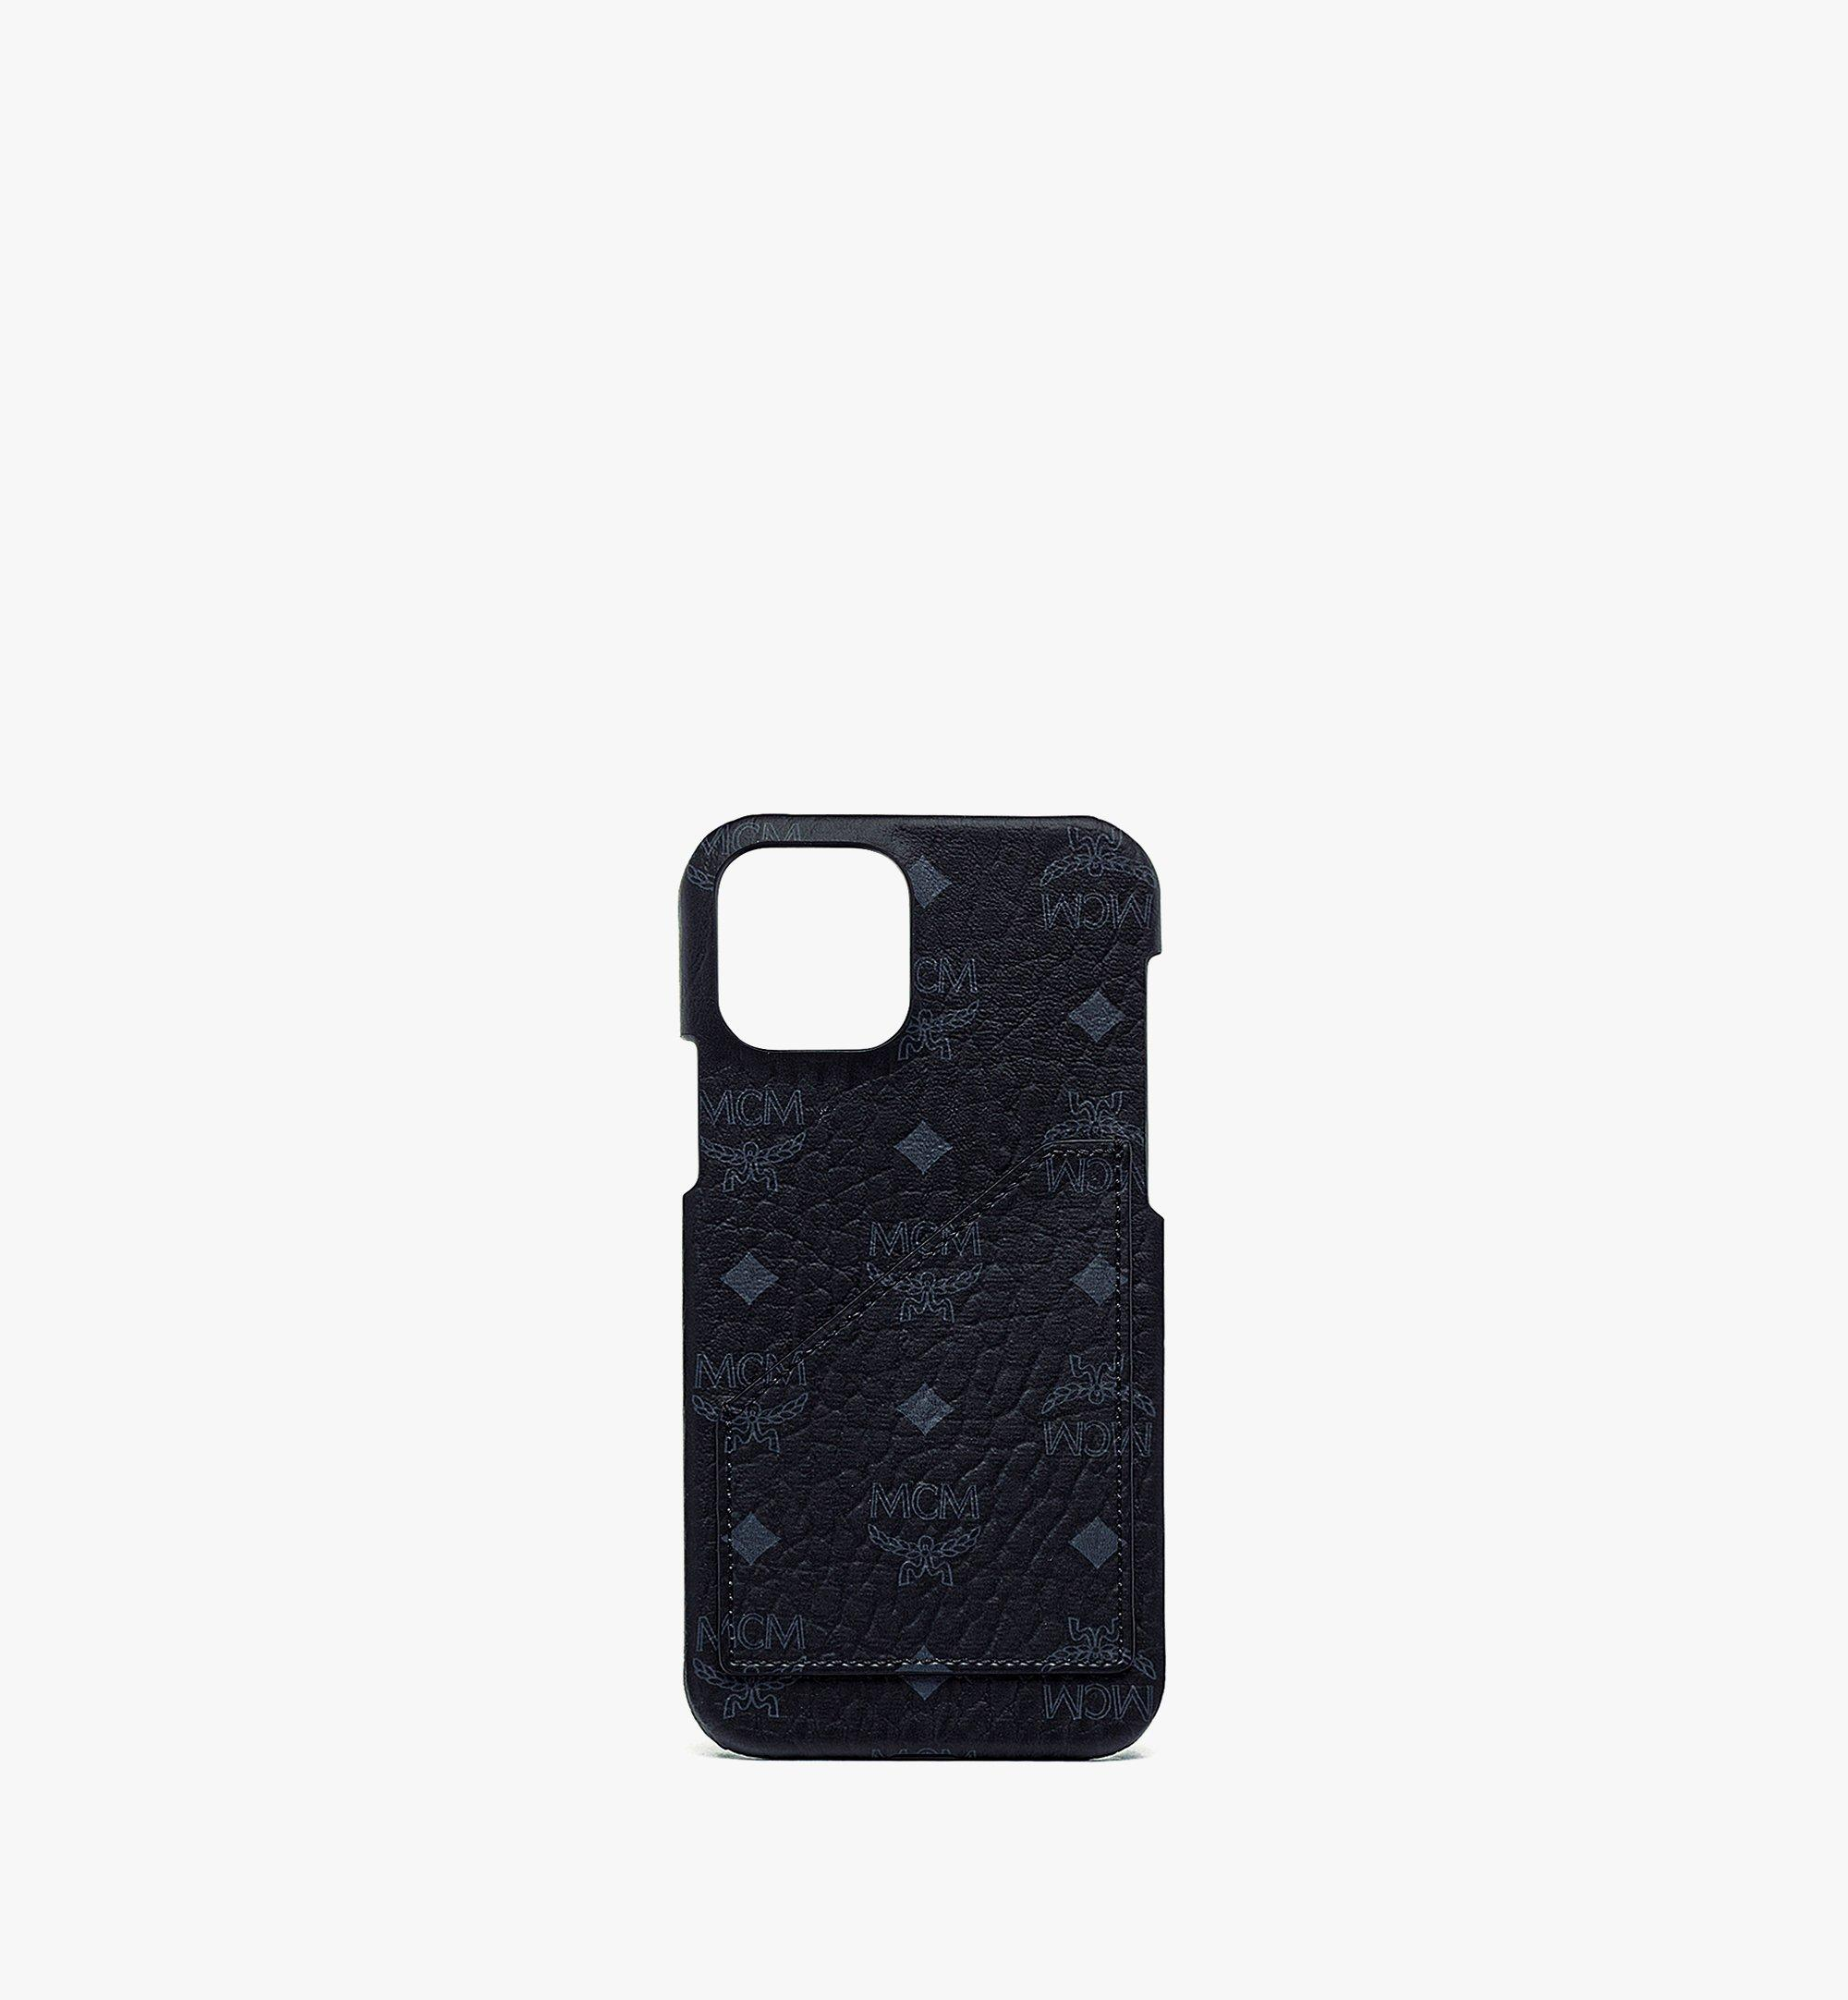 MCM iPhone 12/12 Pro Case in Visetos Original Black MXEBSVI14BK001 Alternate View 1